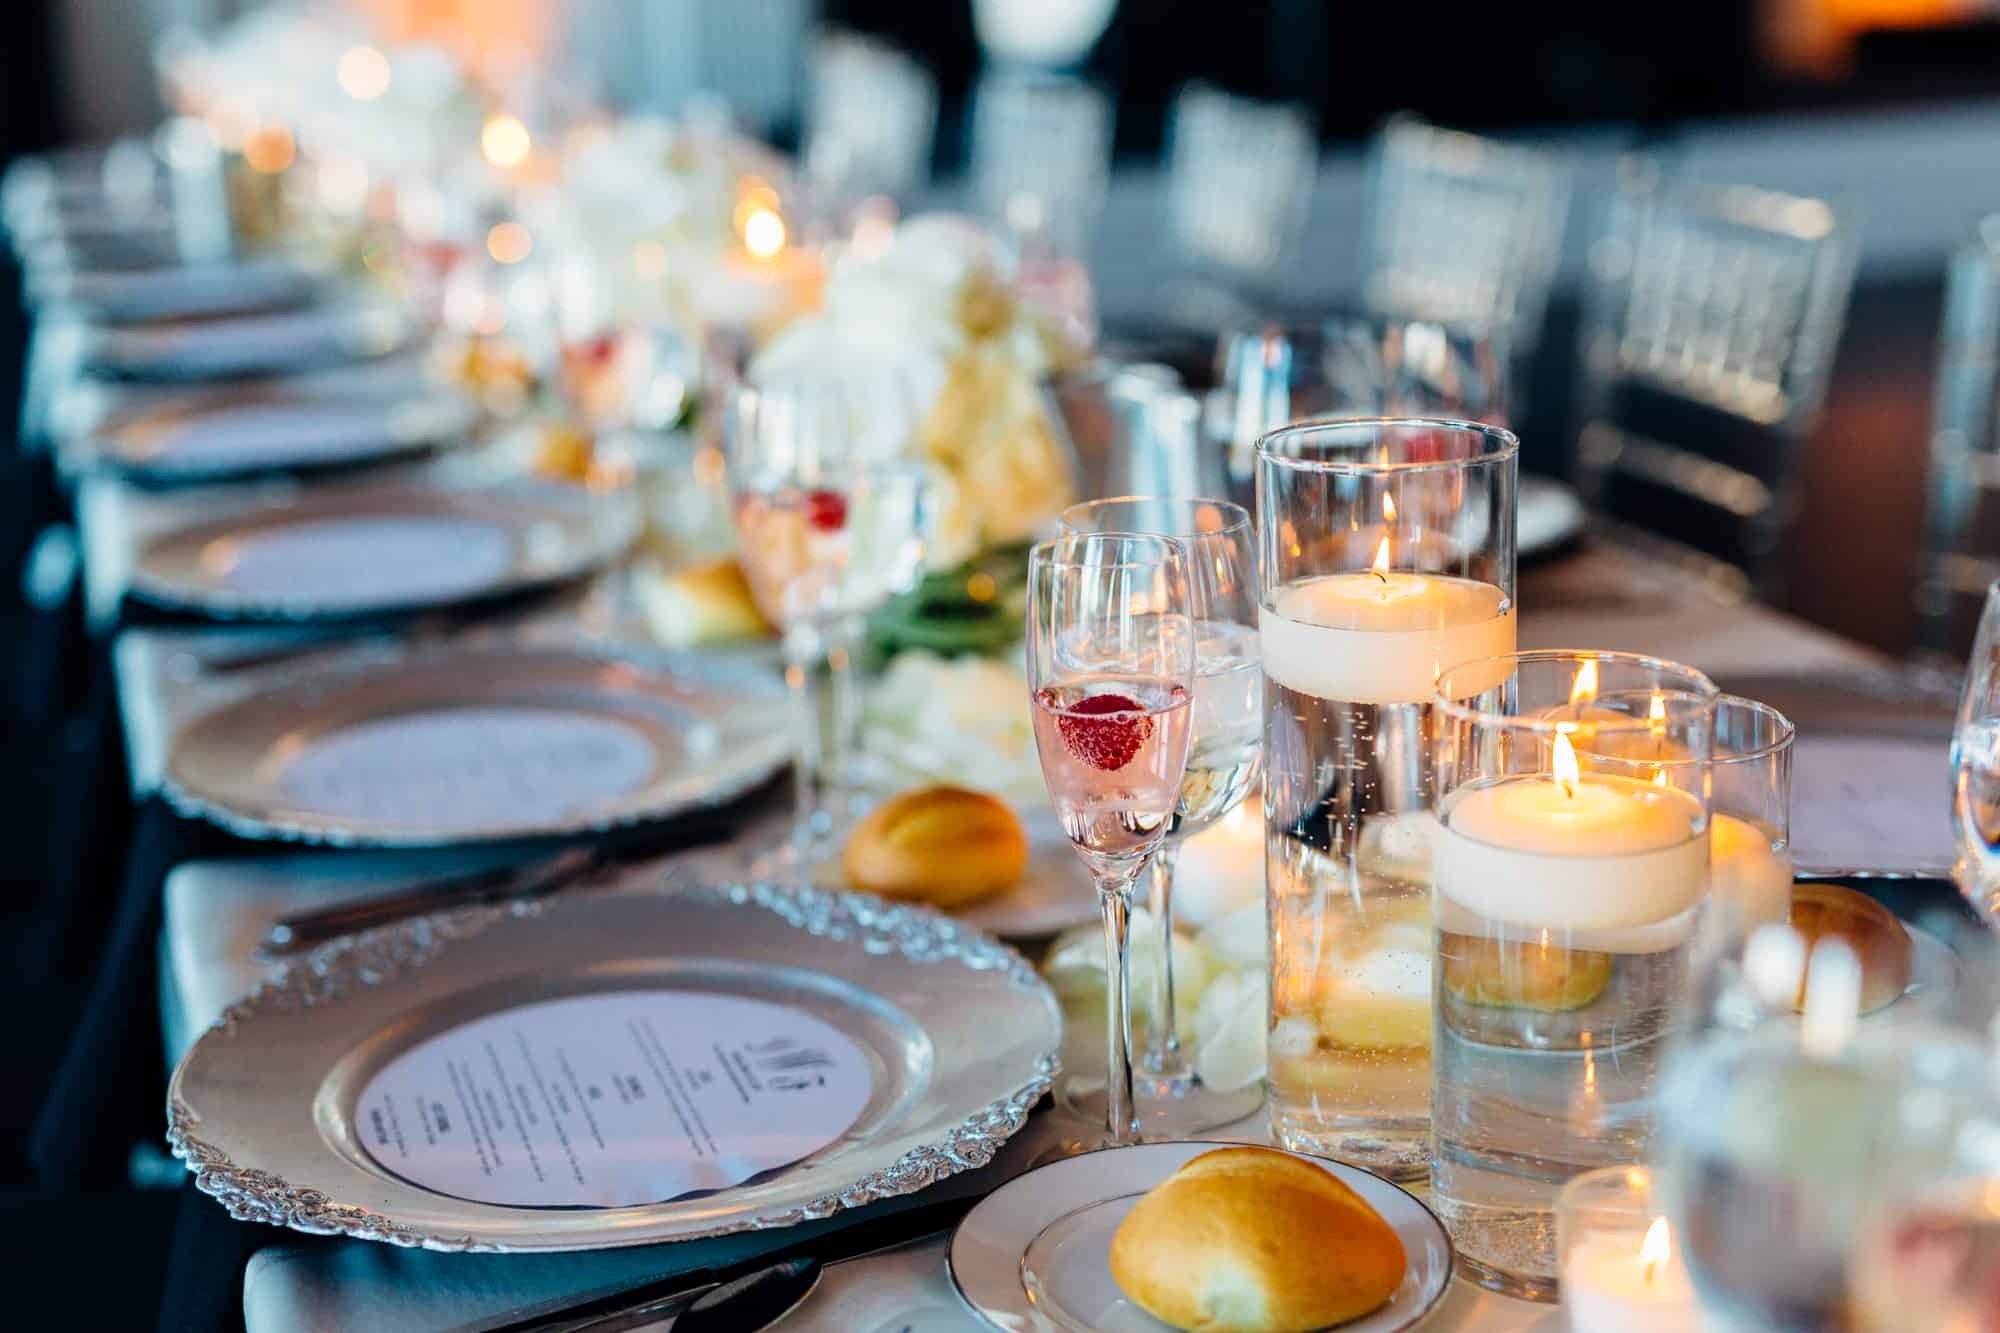 Detail shot of wedding reception dinner table